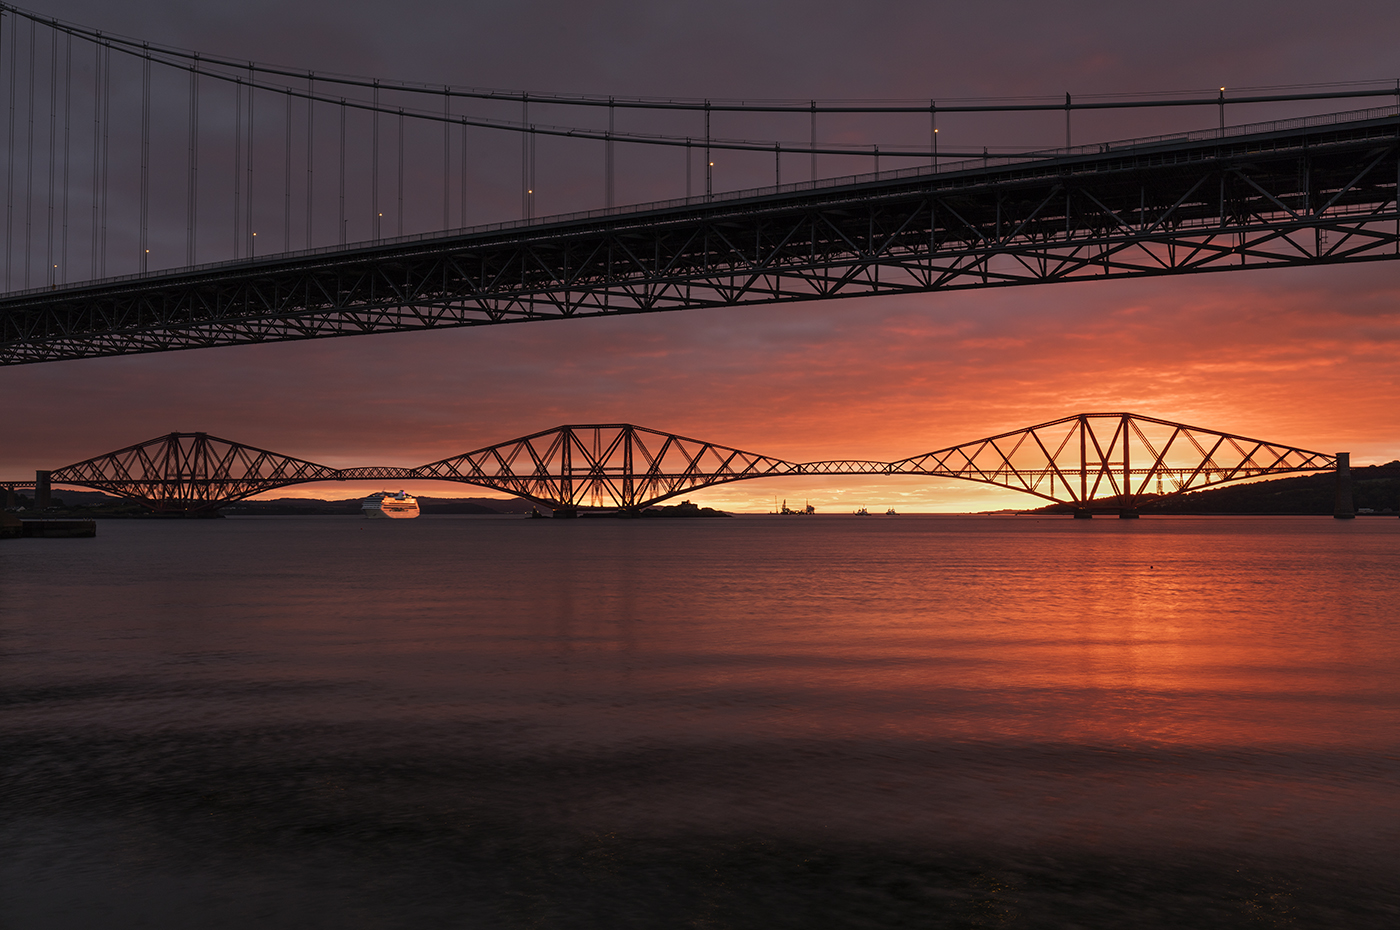 Sunrise over the Forth Bridges, Scotland, UK